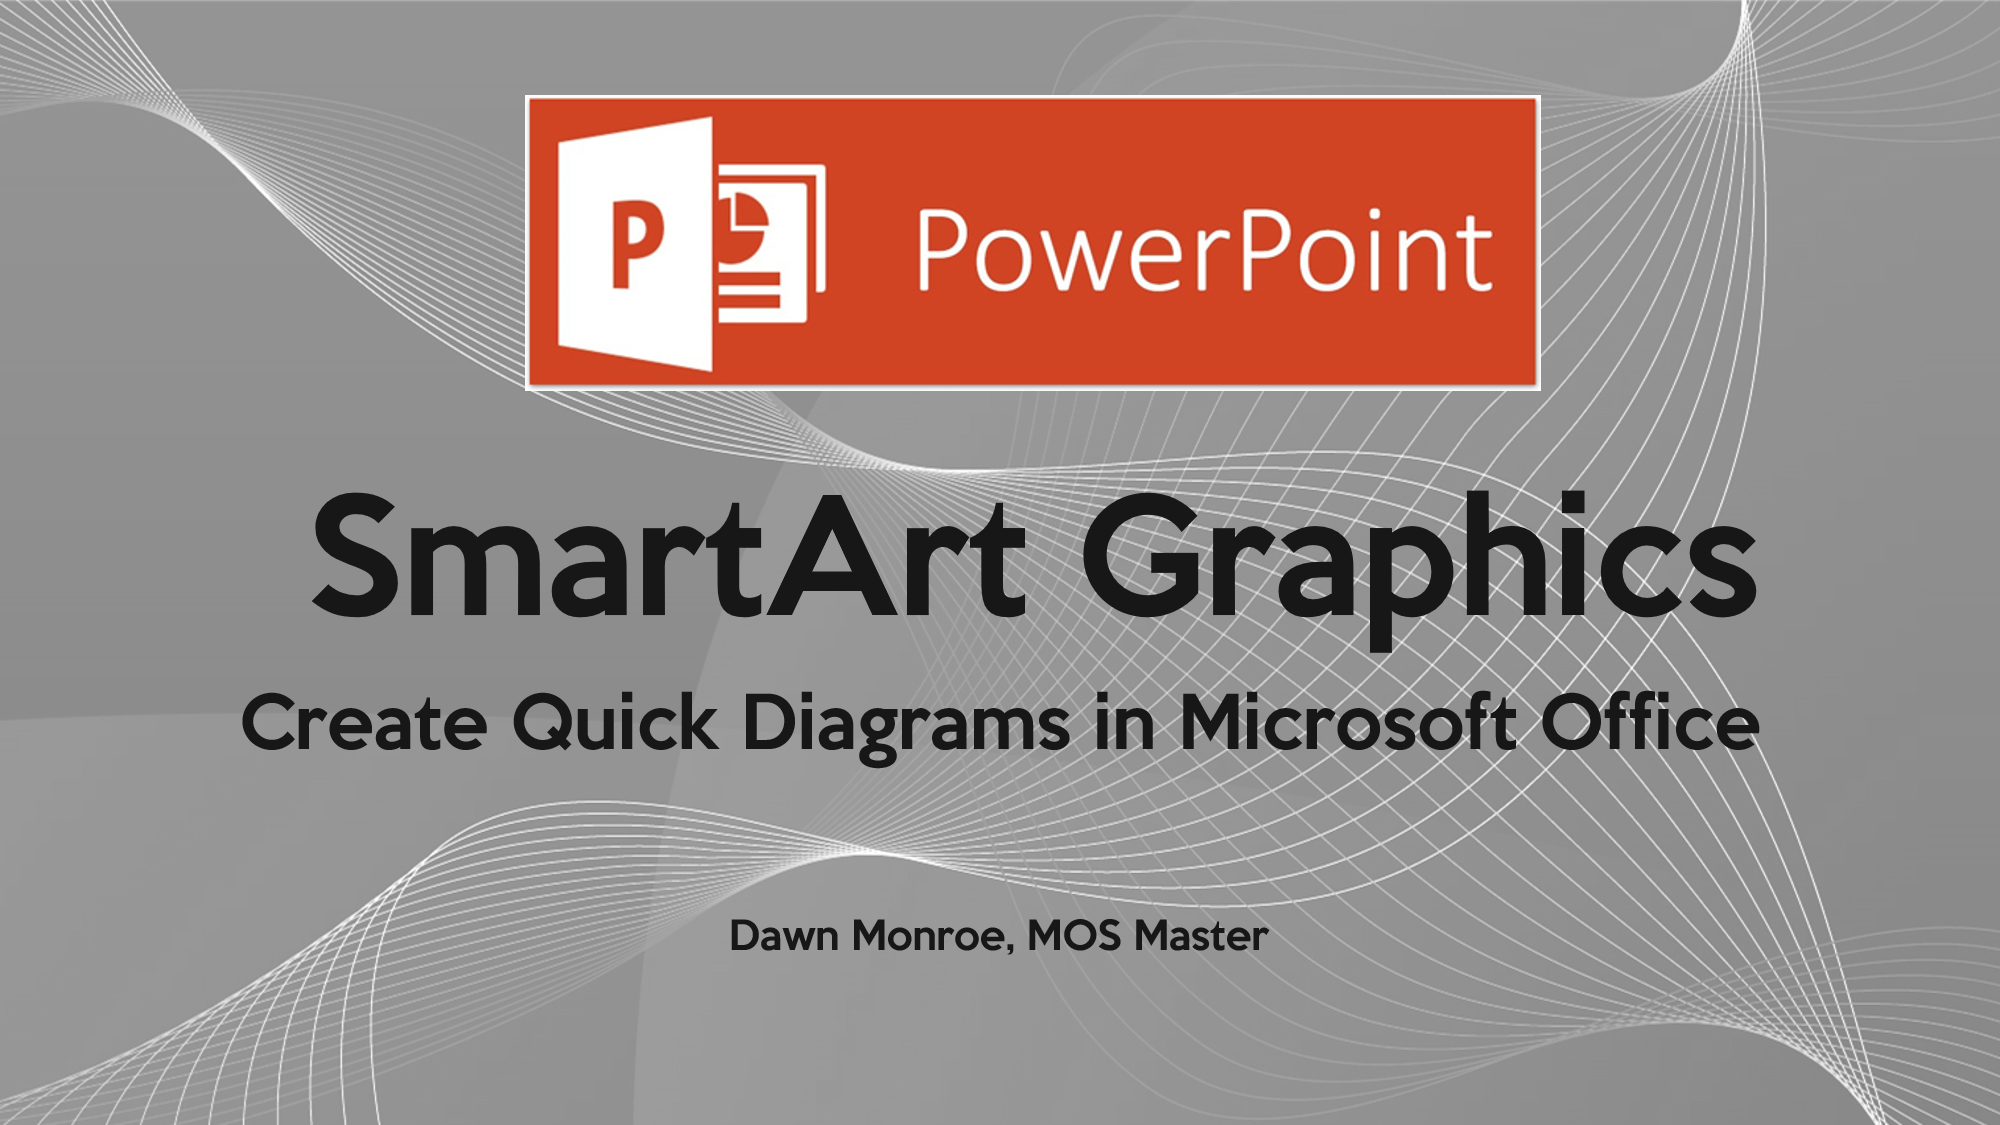 PowerPoint SmartArt Graphics